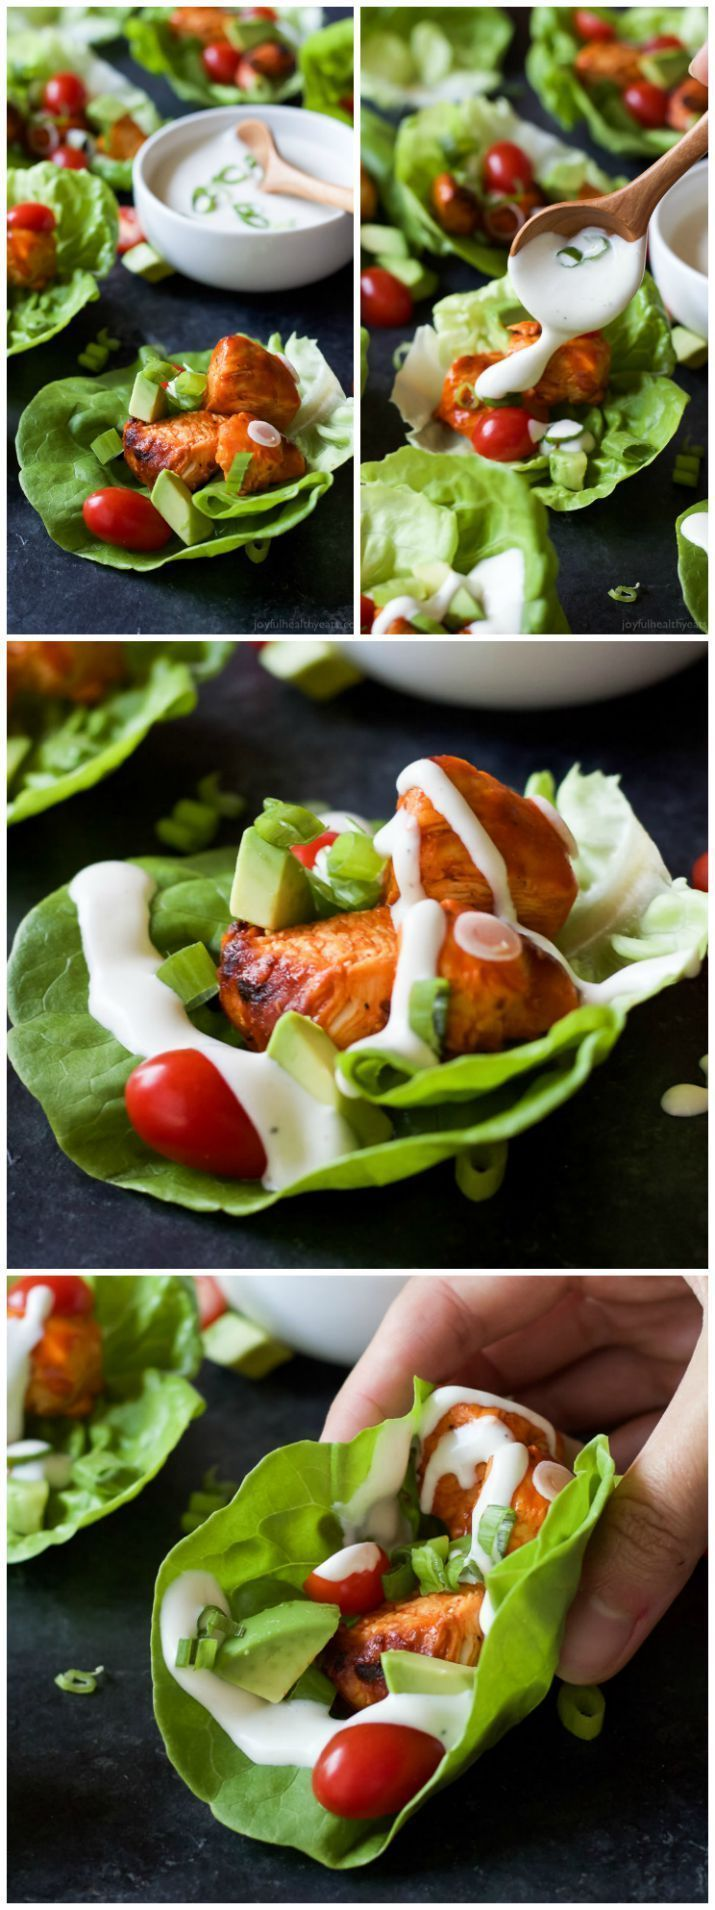 Get game day ready with these healthier low calorie Grilled Buffalo Chicken Lettuce Wraps! All the same great flavor with half the calories! These are delicious!| http://joyfulhealthyeats.com #recipes